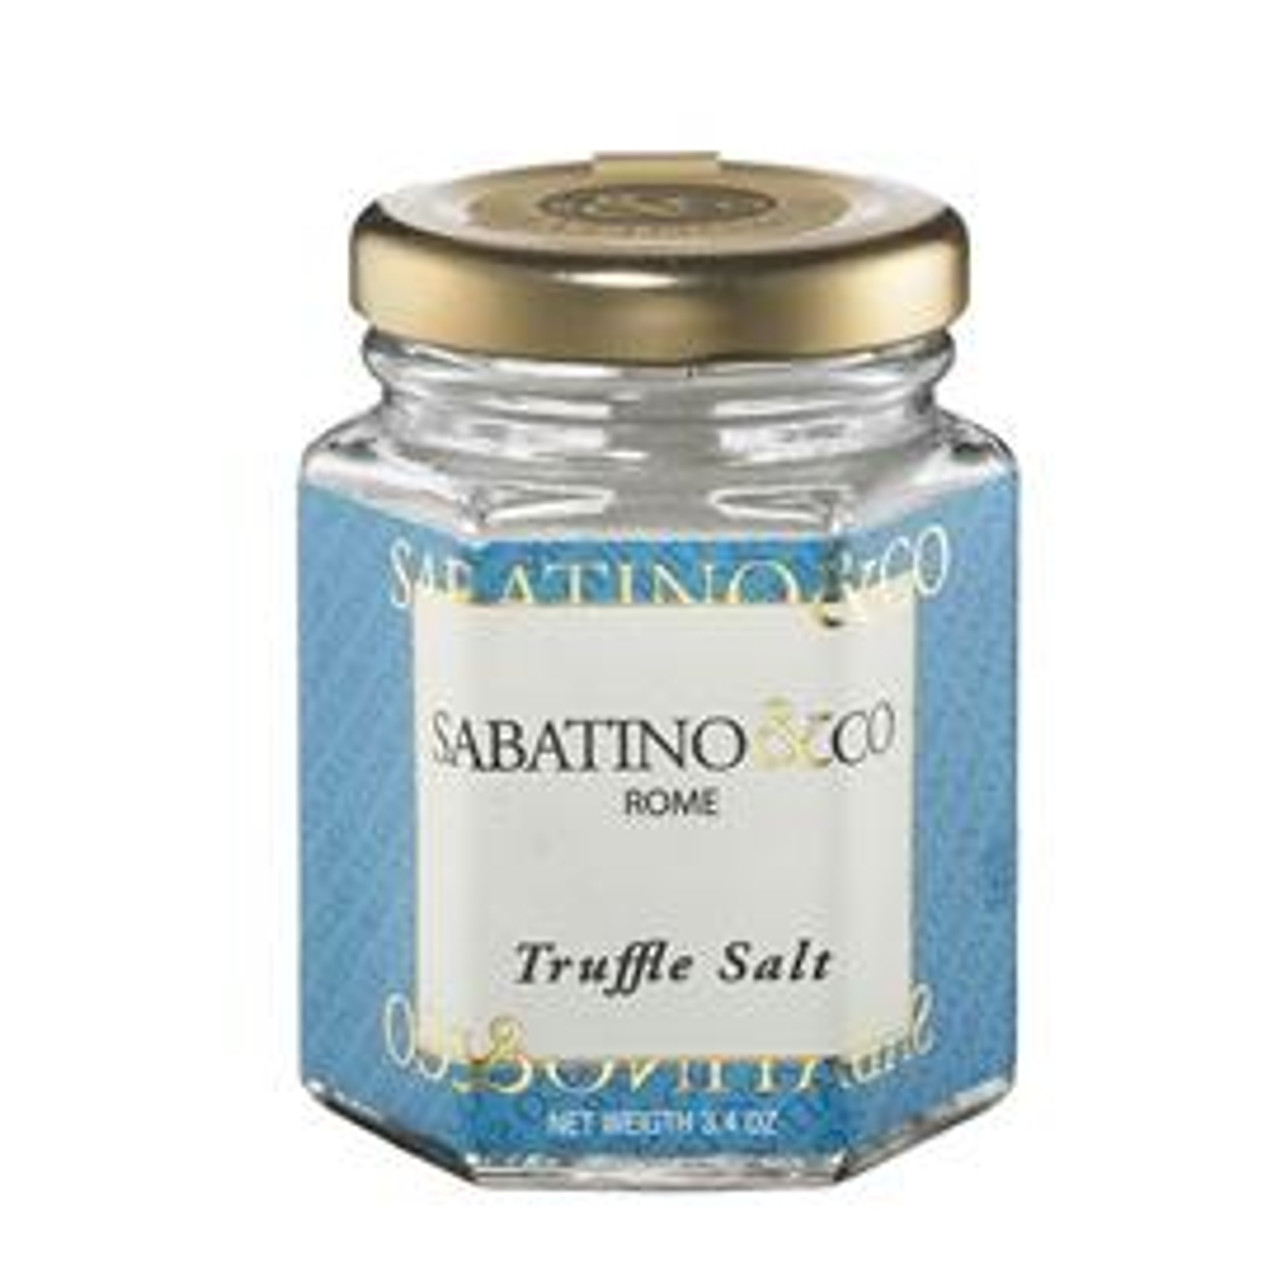 Sabatino Tartufi Truffled Sea Salt